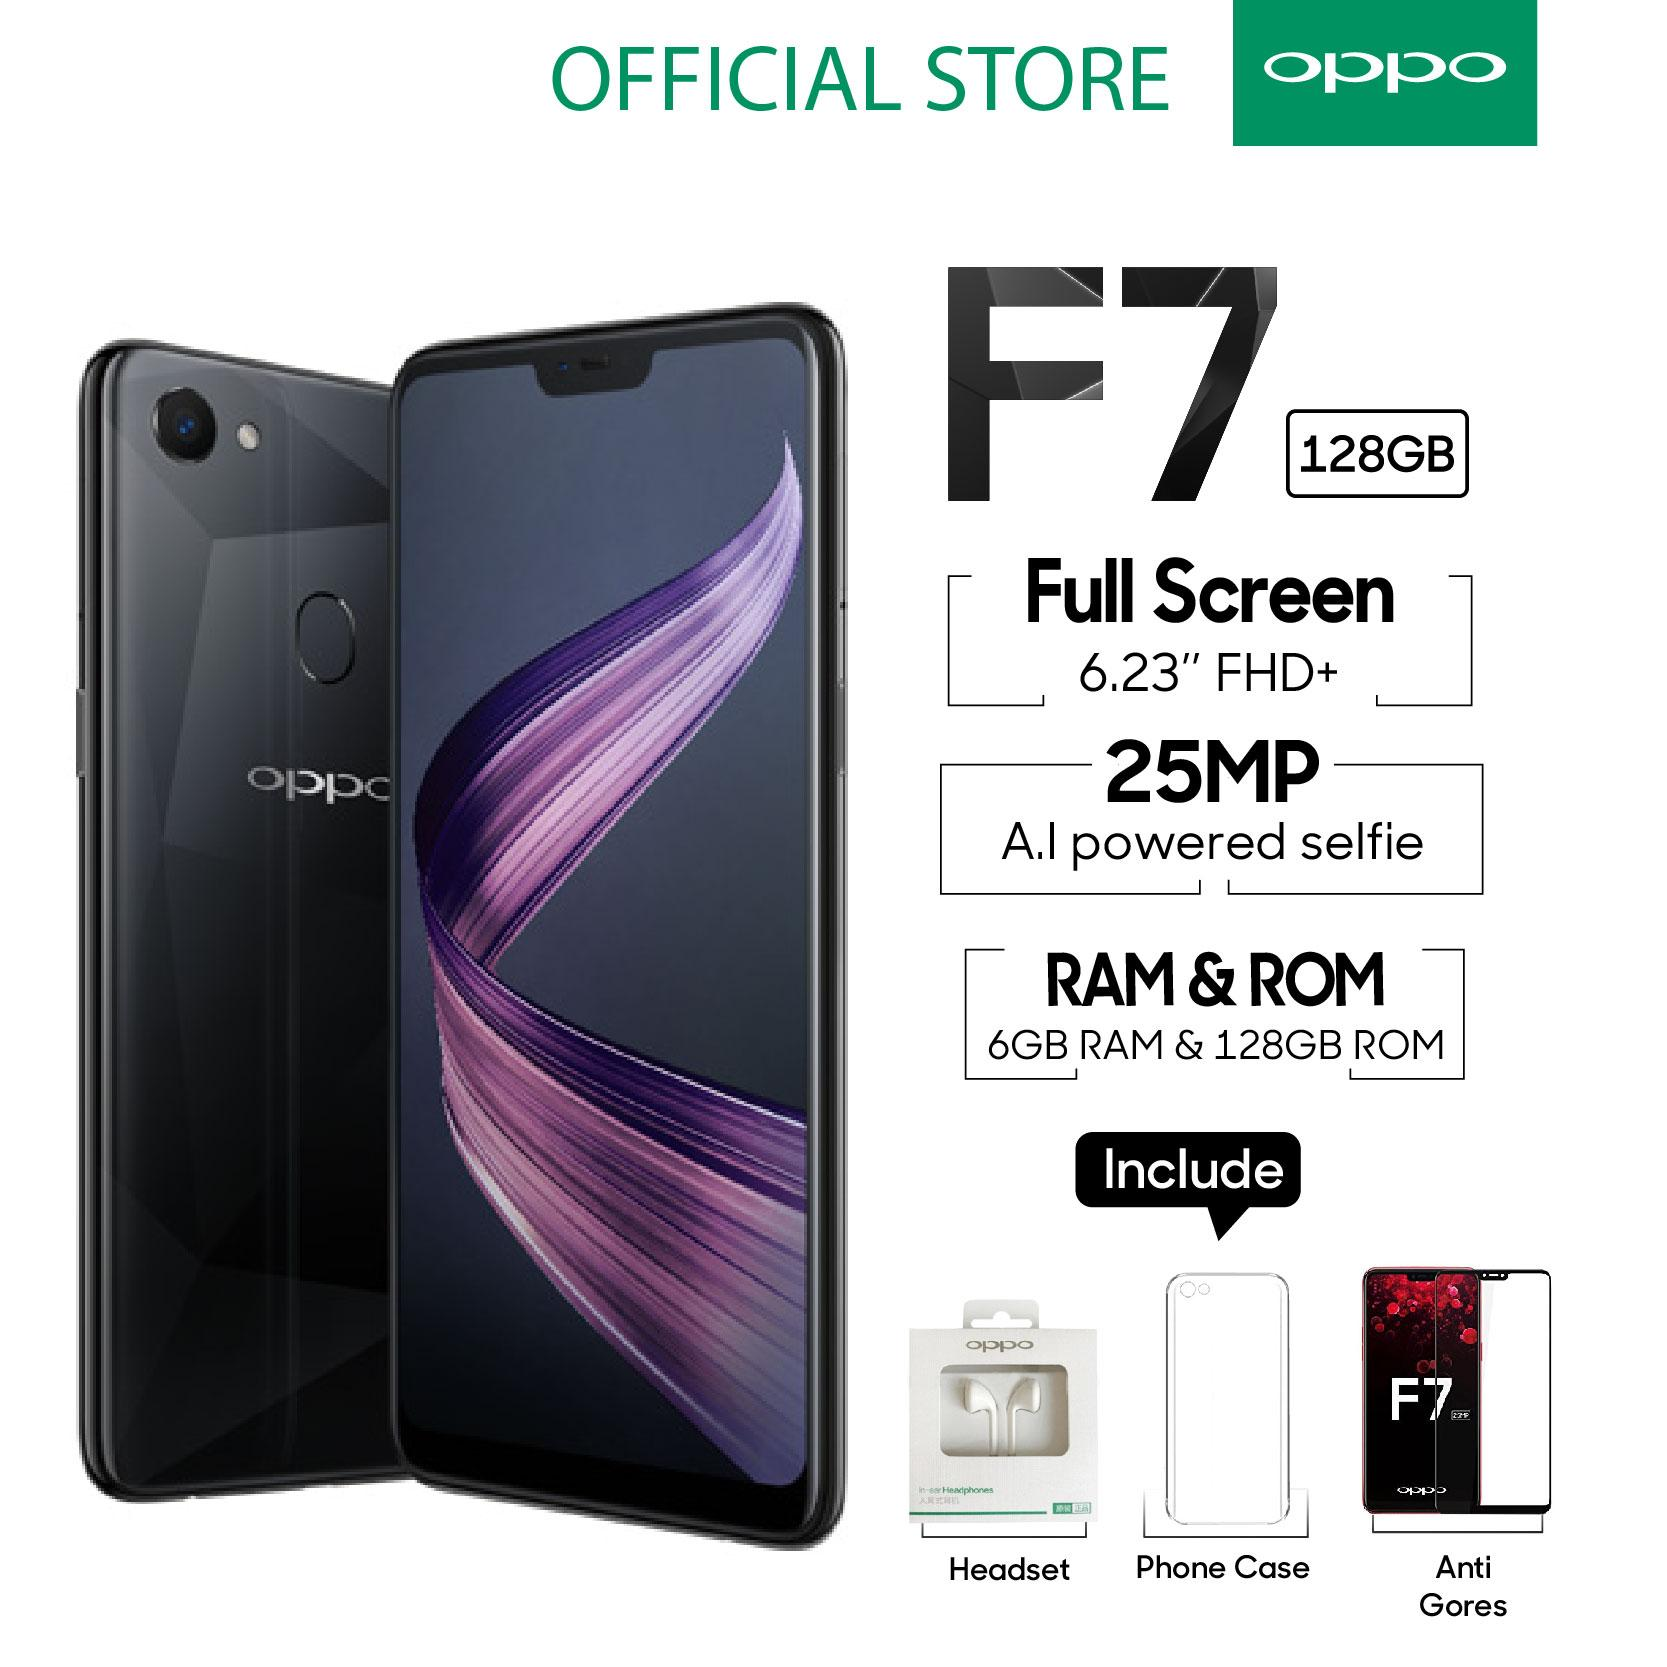 OPPO F7 SMARTPHONE 6GB 128GB Black Face Unlock Al Powered Selfie 25